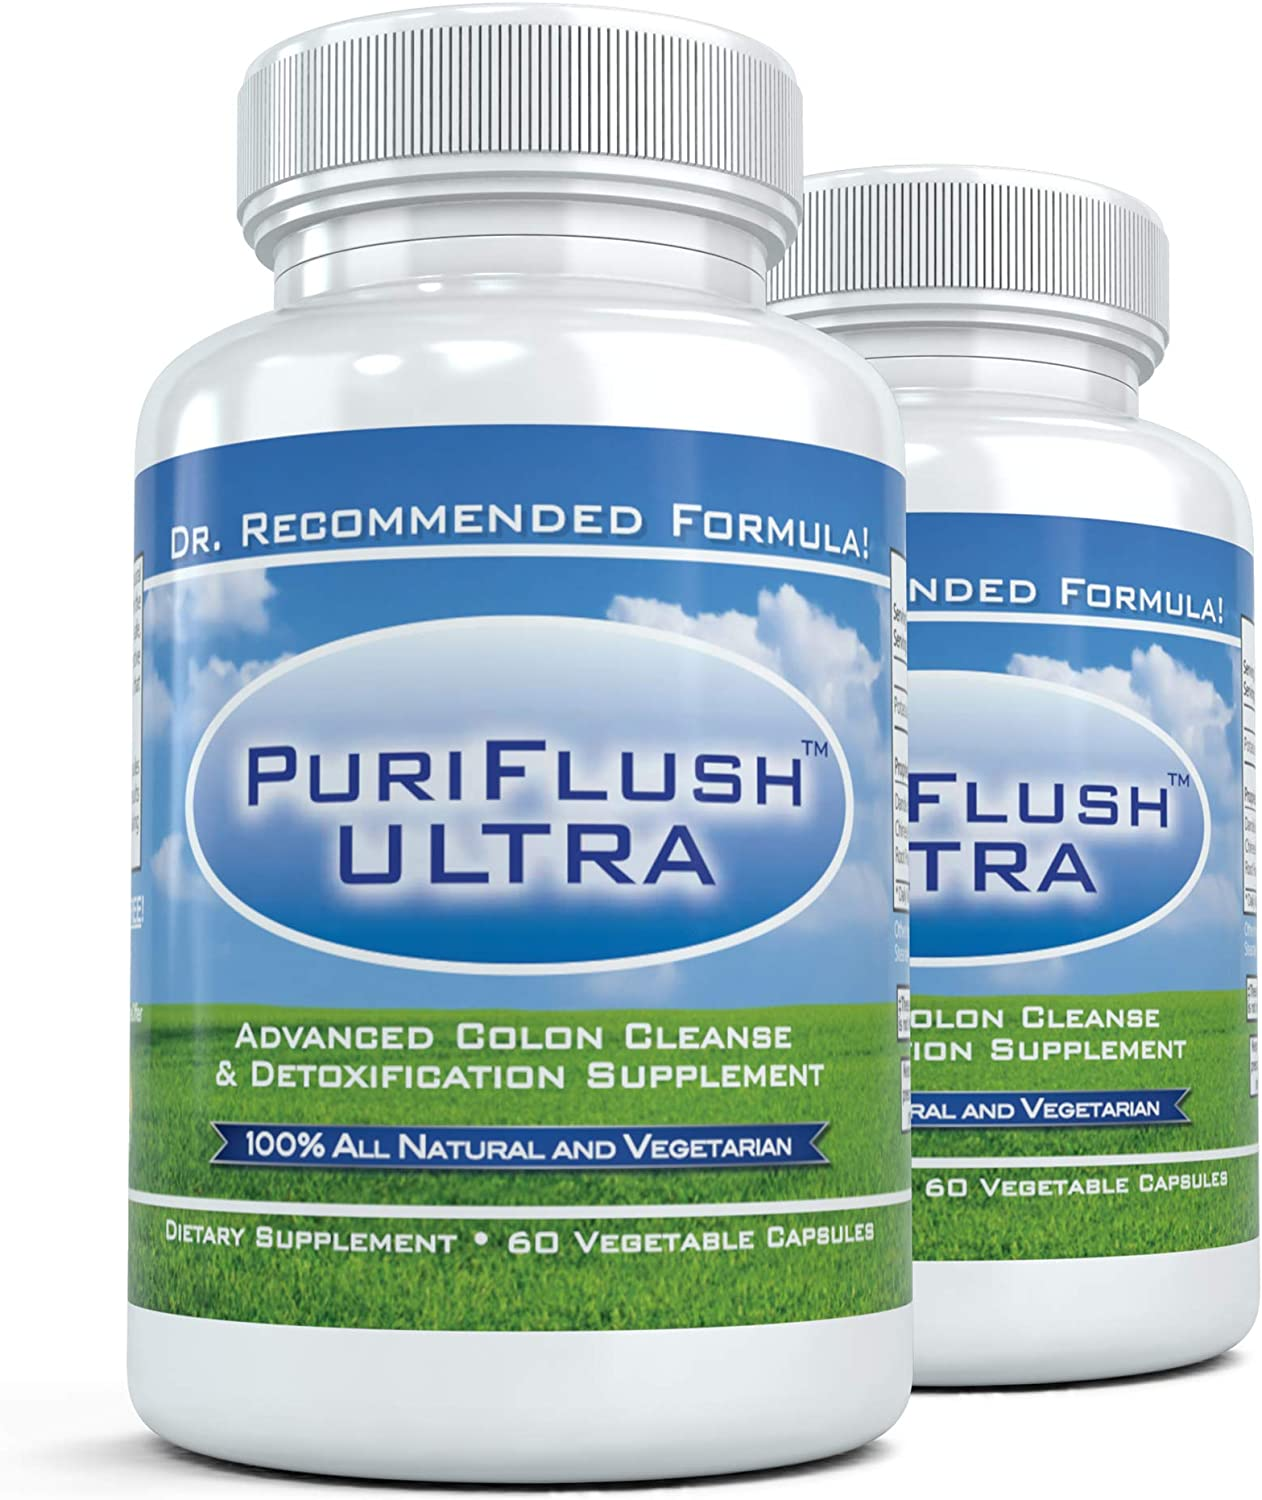 PURIFLUSH ULTRA 2 Bottles – Professional Strength All-Natural Colon Cleanse Supplement 60 Capsules per Bottle